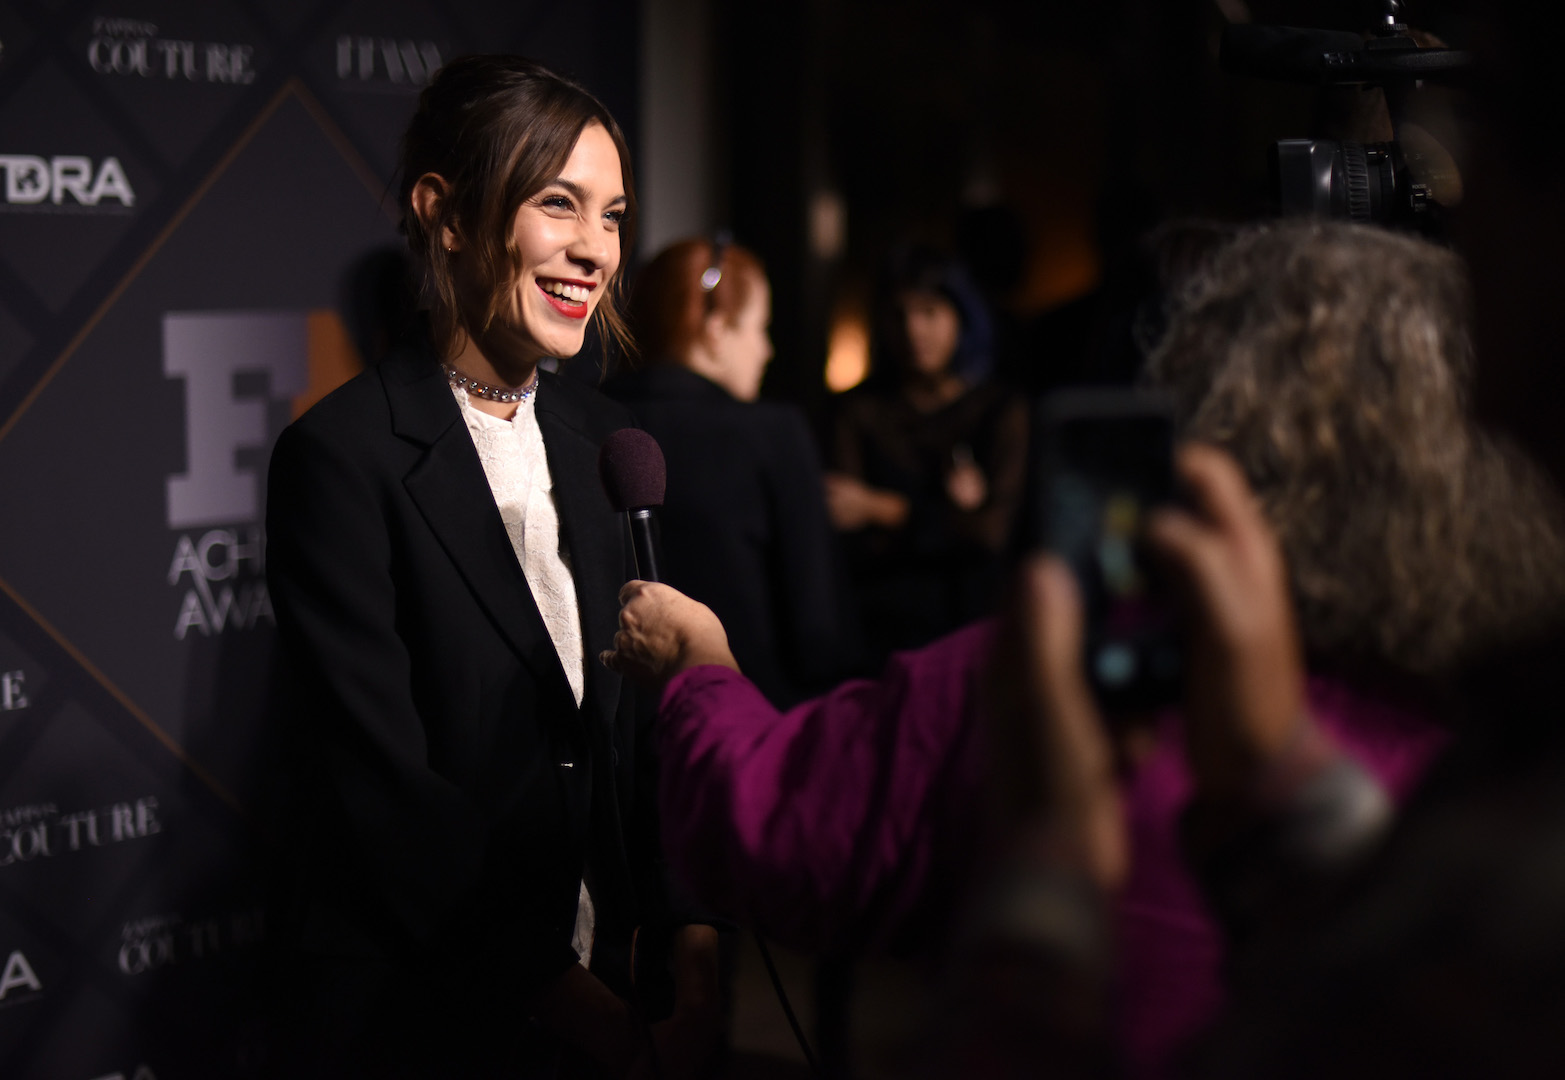 Mandatory Credit: Photo by Stephen Lovekin/Variety/REX Shutterstock (5470209cg) Alexa Chung with interviewer Footwear News Achievement Awards, Arrivals, New York, America - 02 Dec 2015